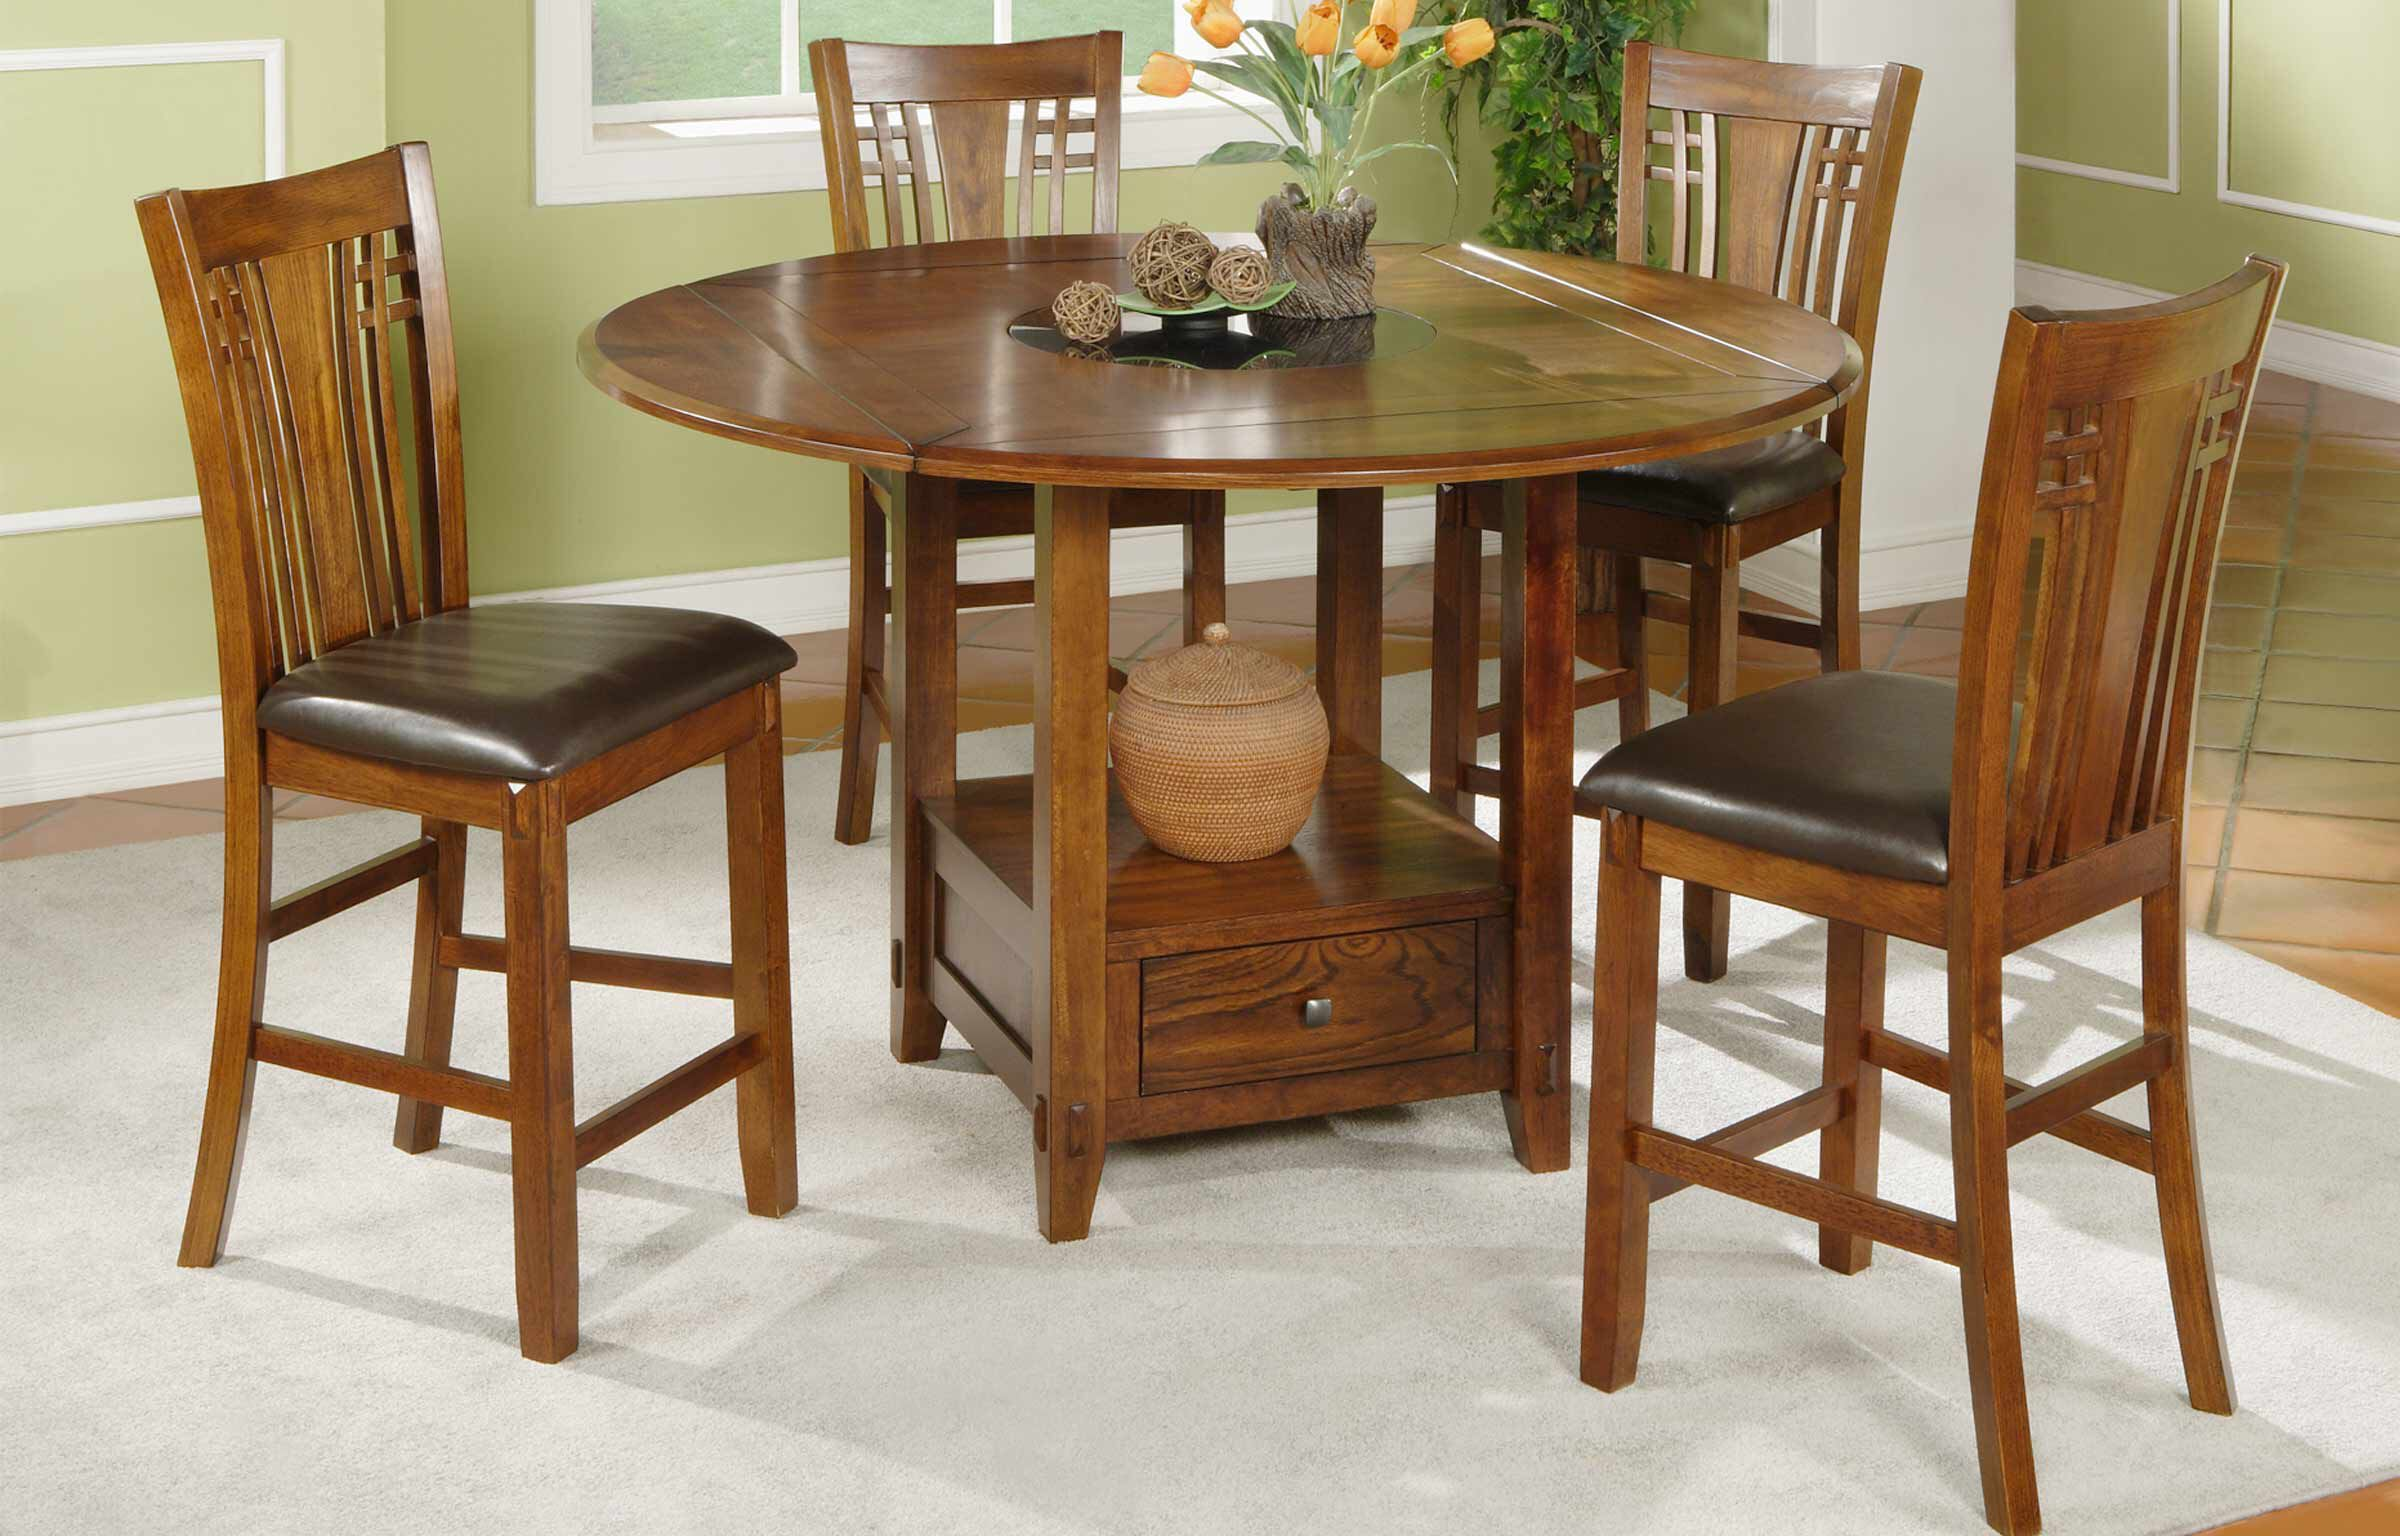 Gentil Traditional Five Piece Wood Grain Pub Set In Distressed Walnut | Mathis  Brothers Furniture